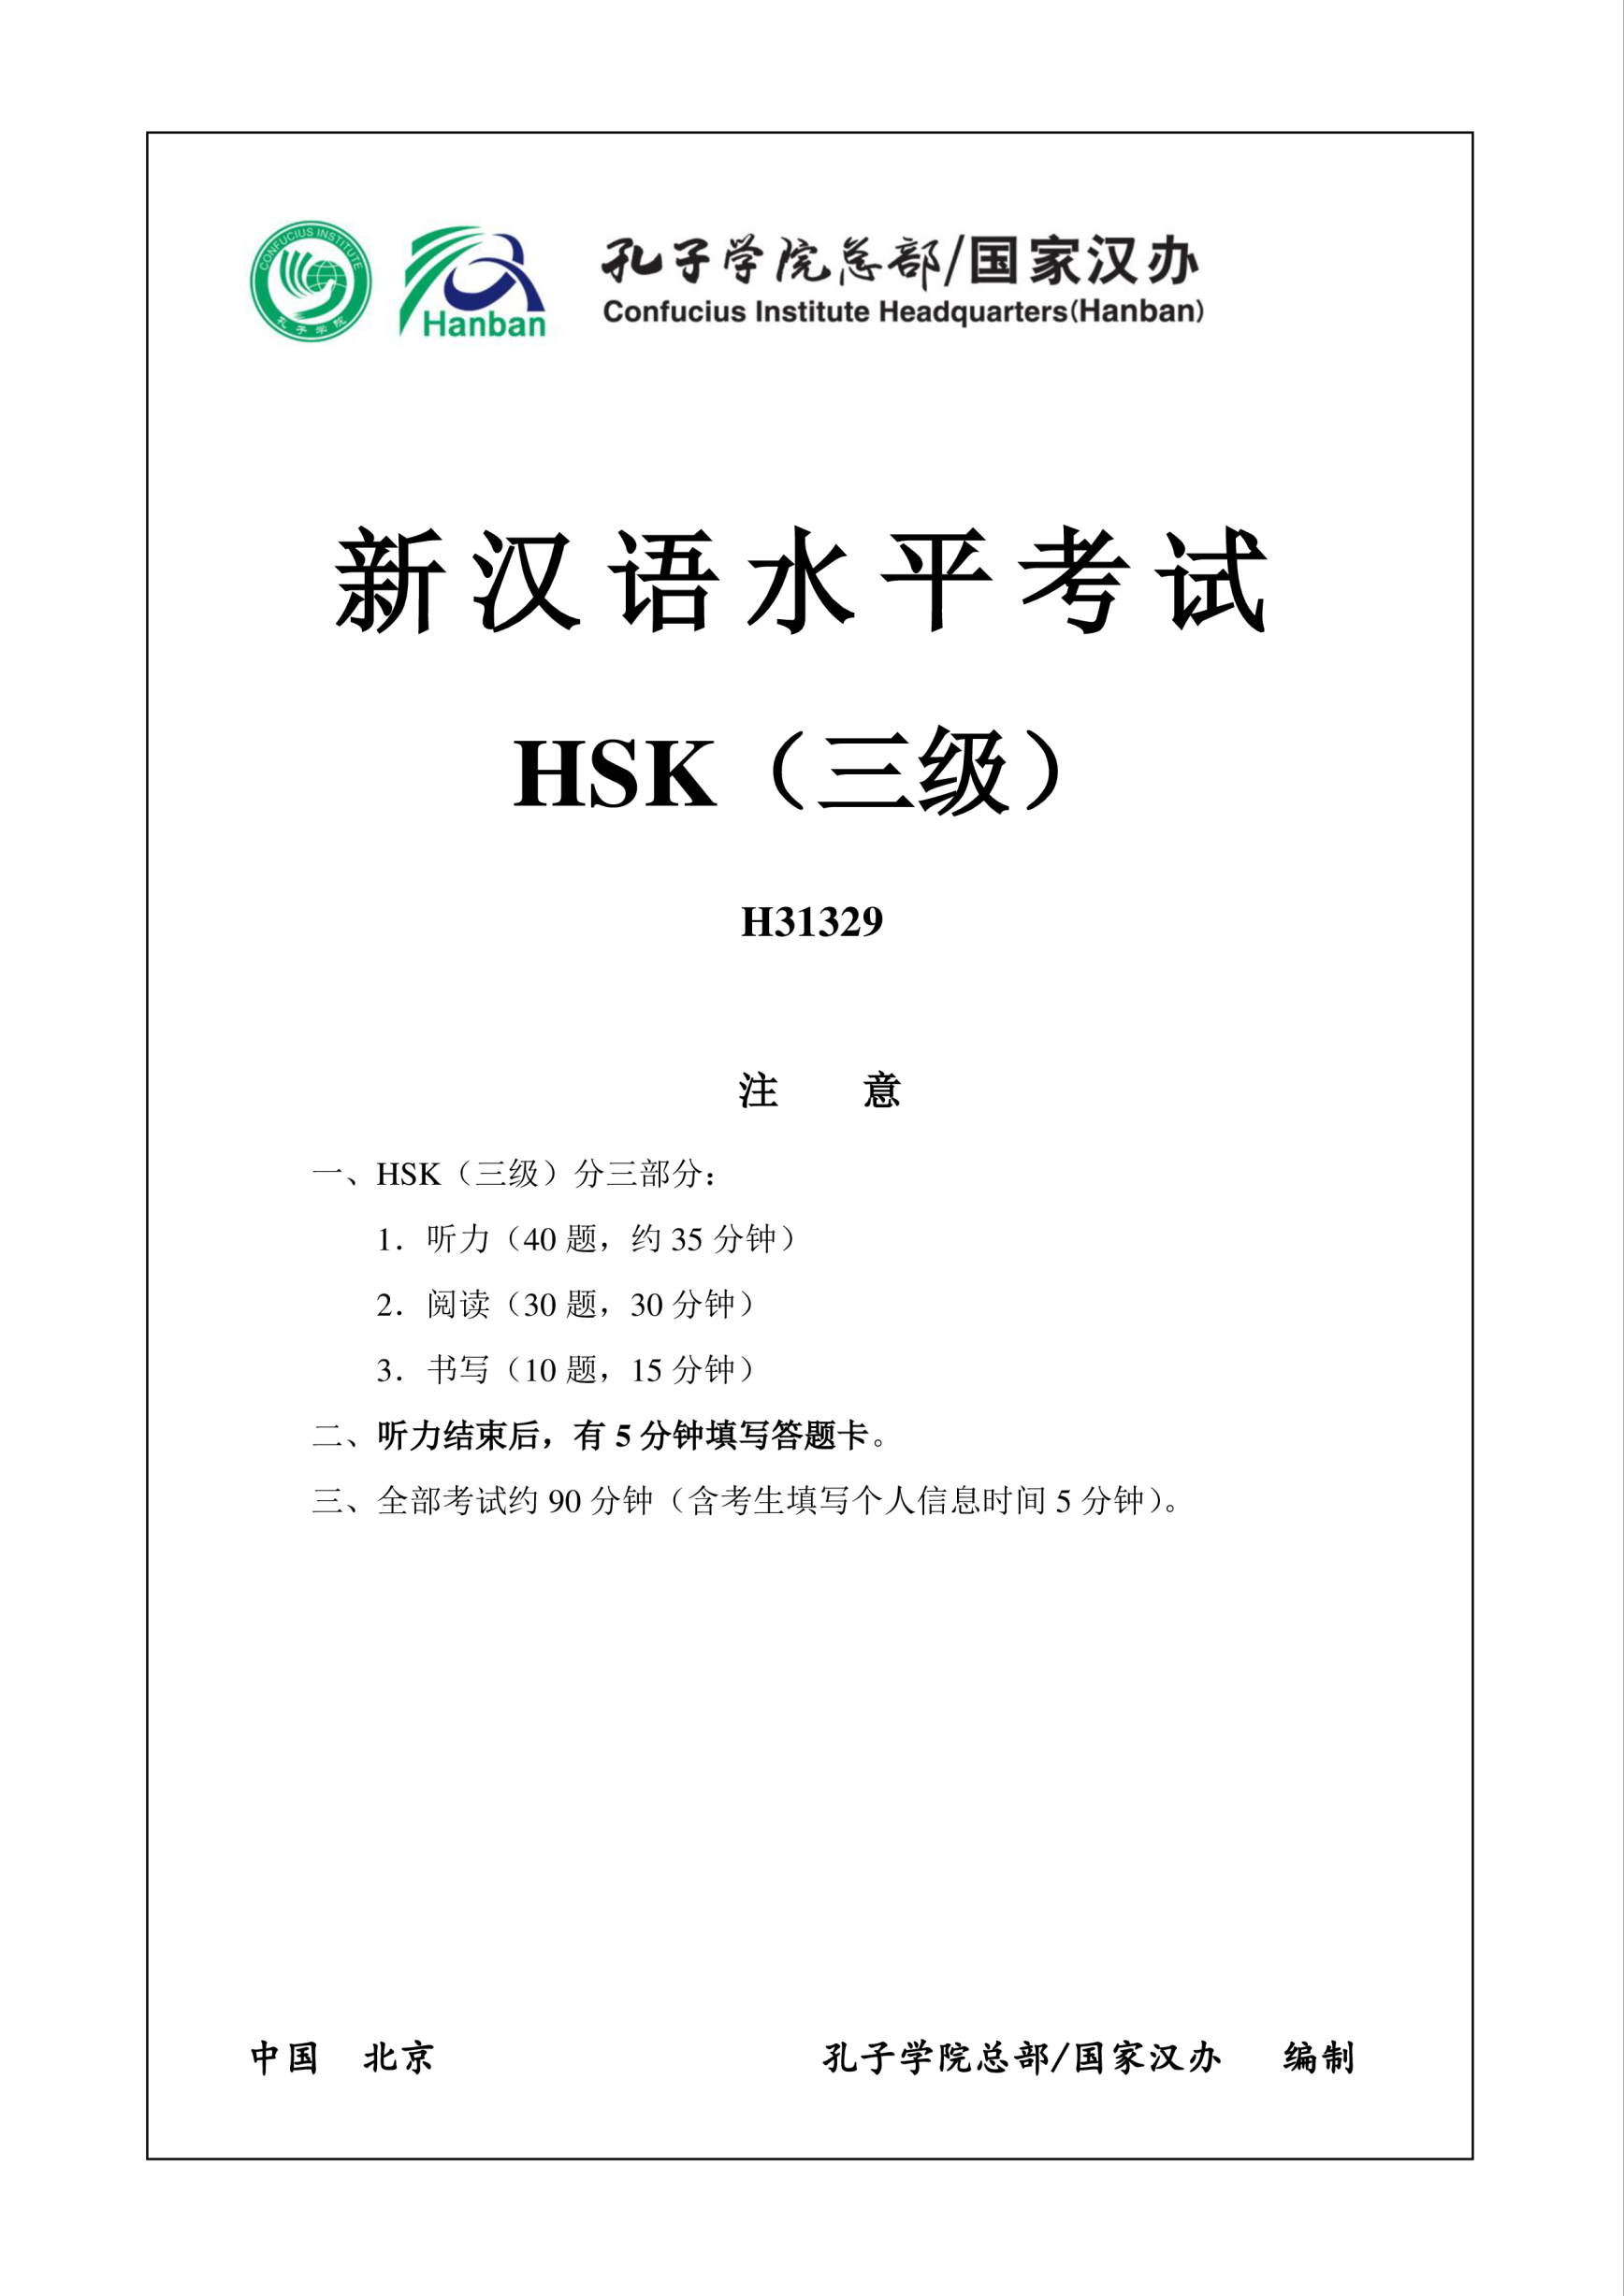 template preview imageHSK3 Chinese Exam including Answers # H31329